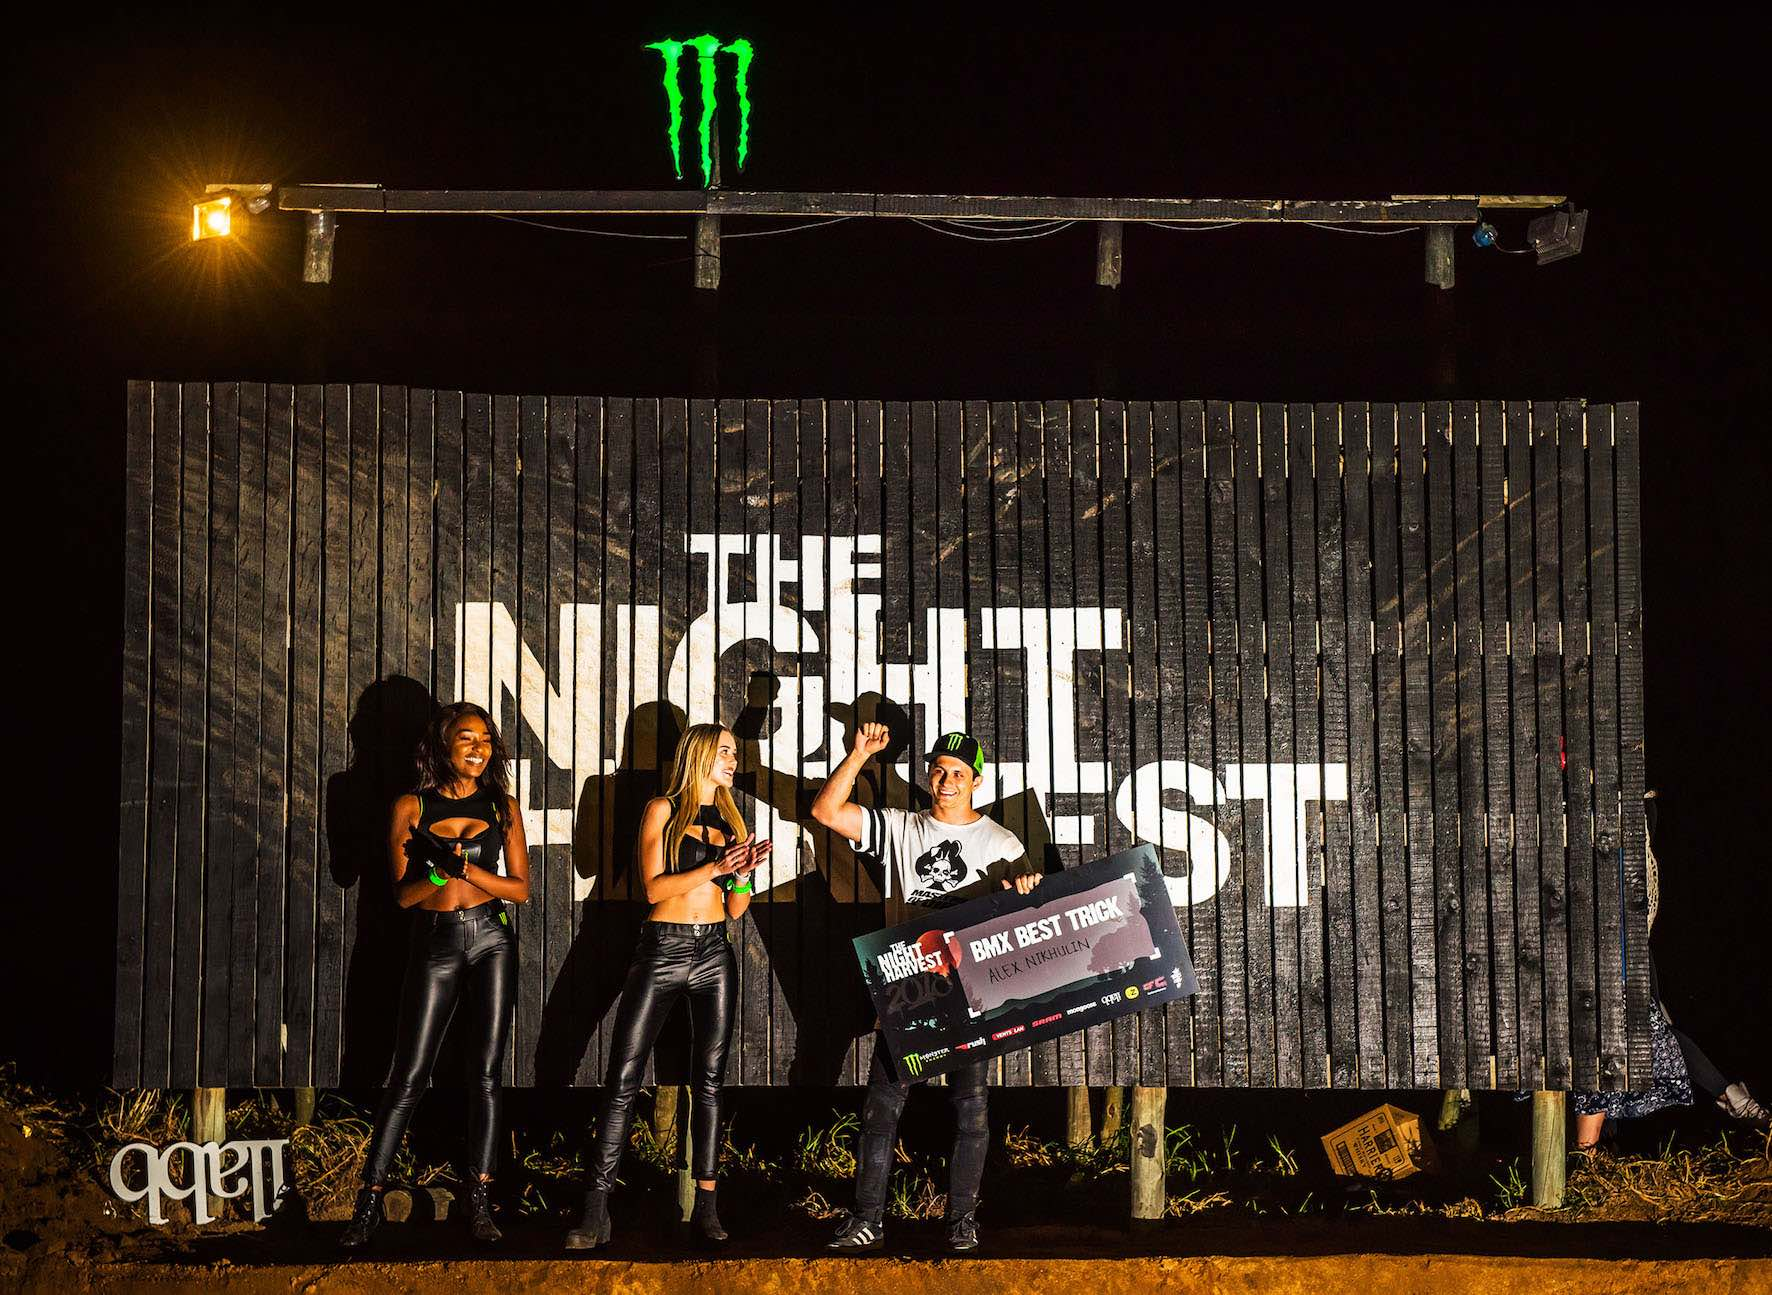 The Night Harvest 2018 BMX best trick podium